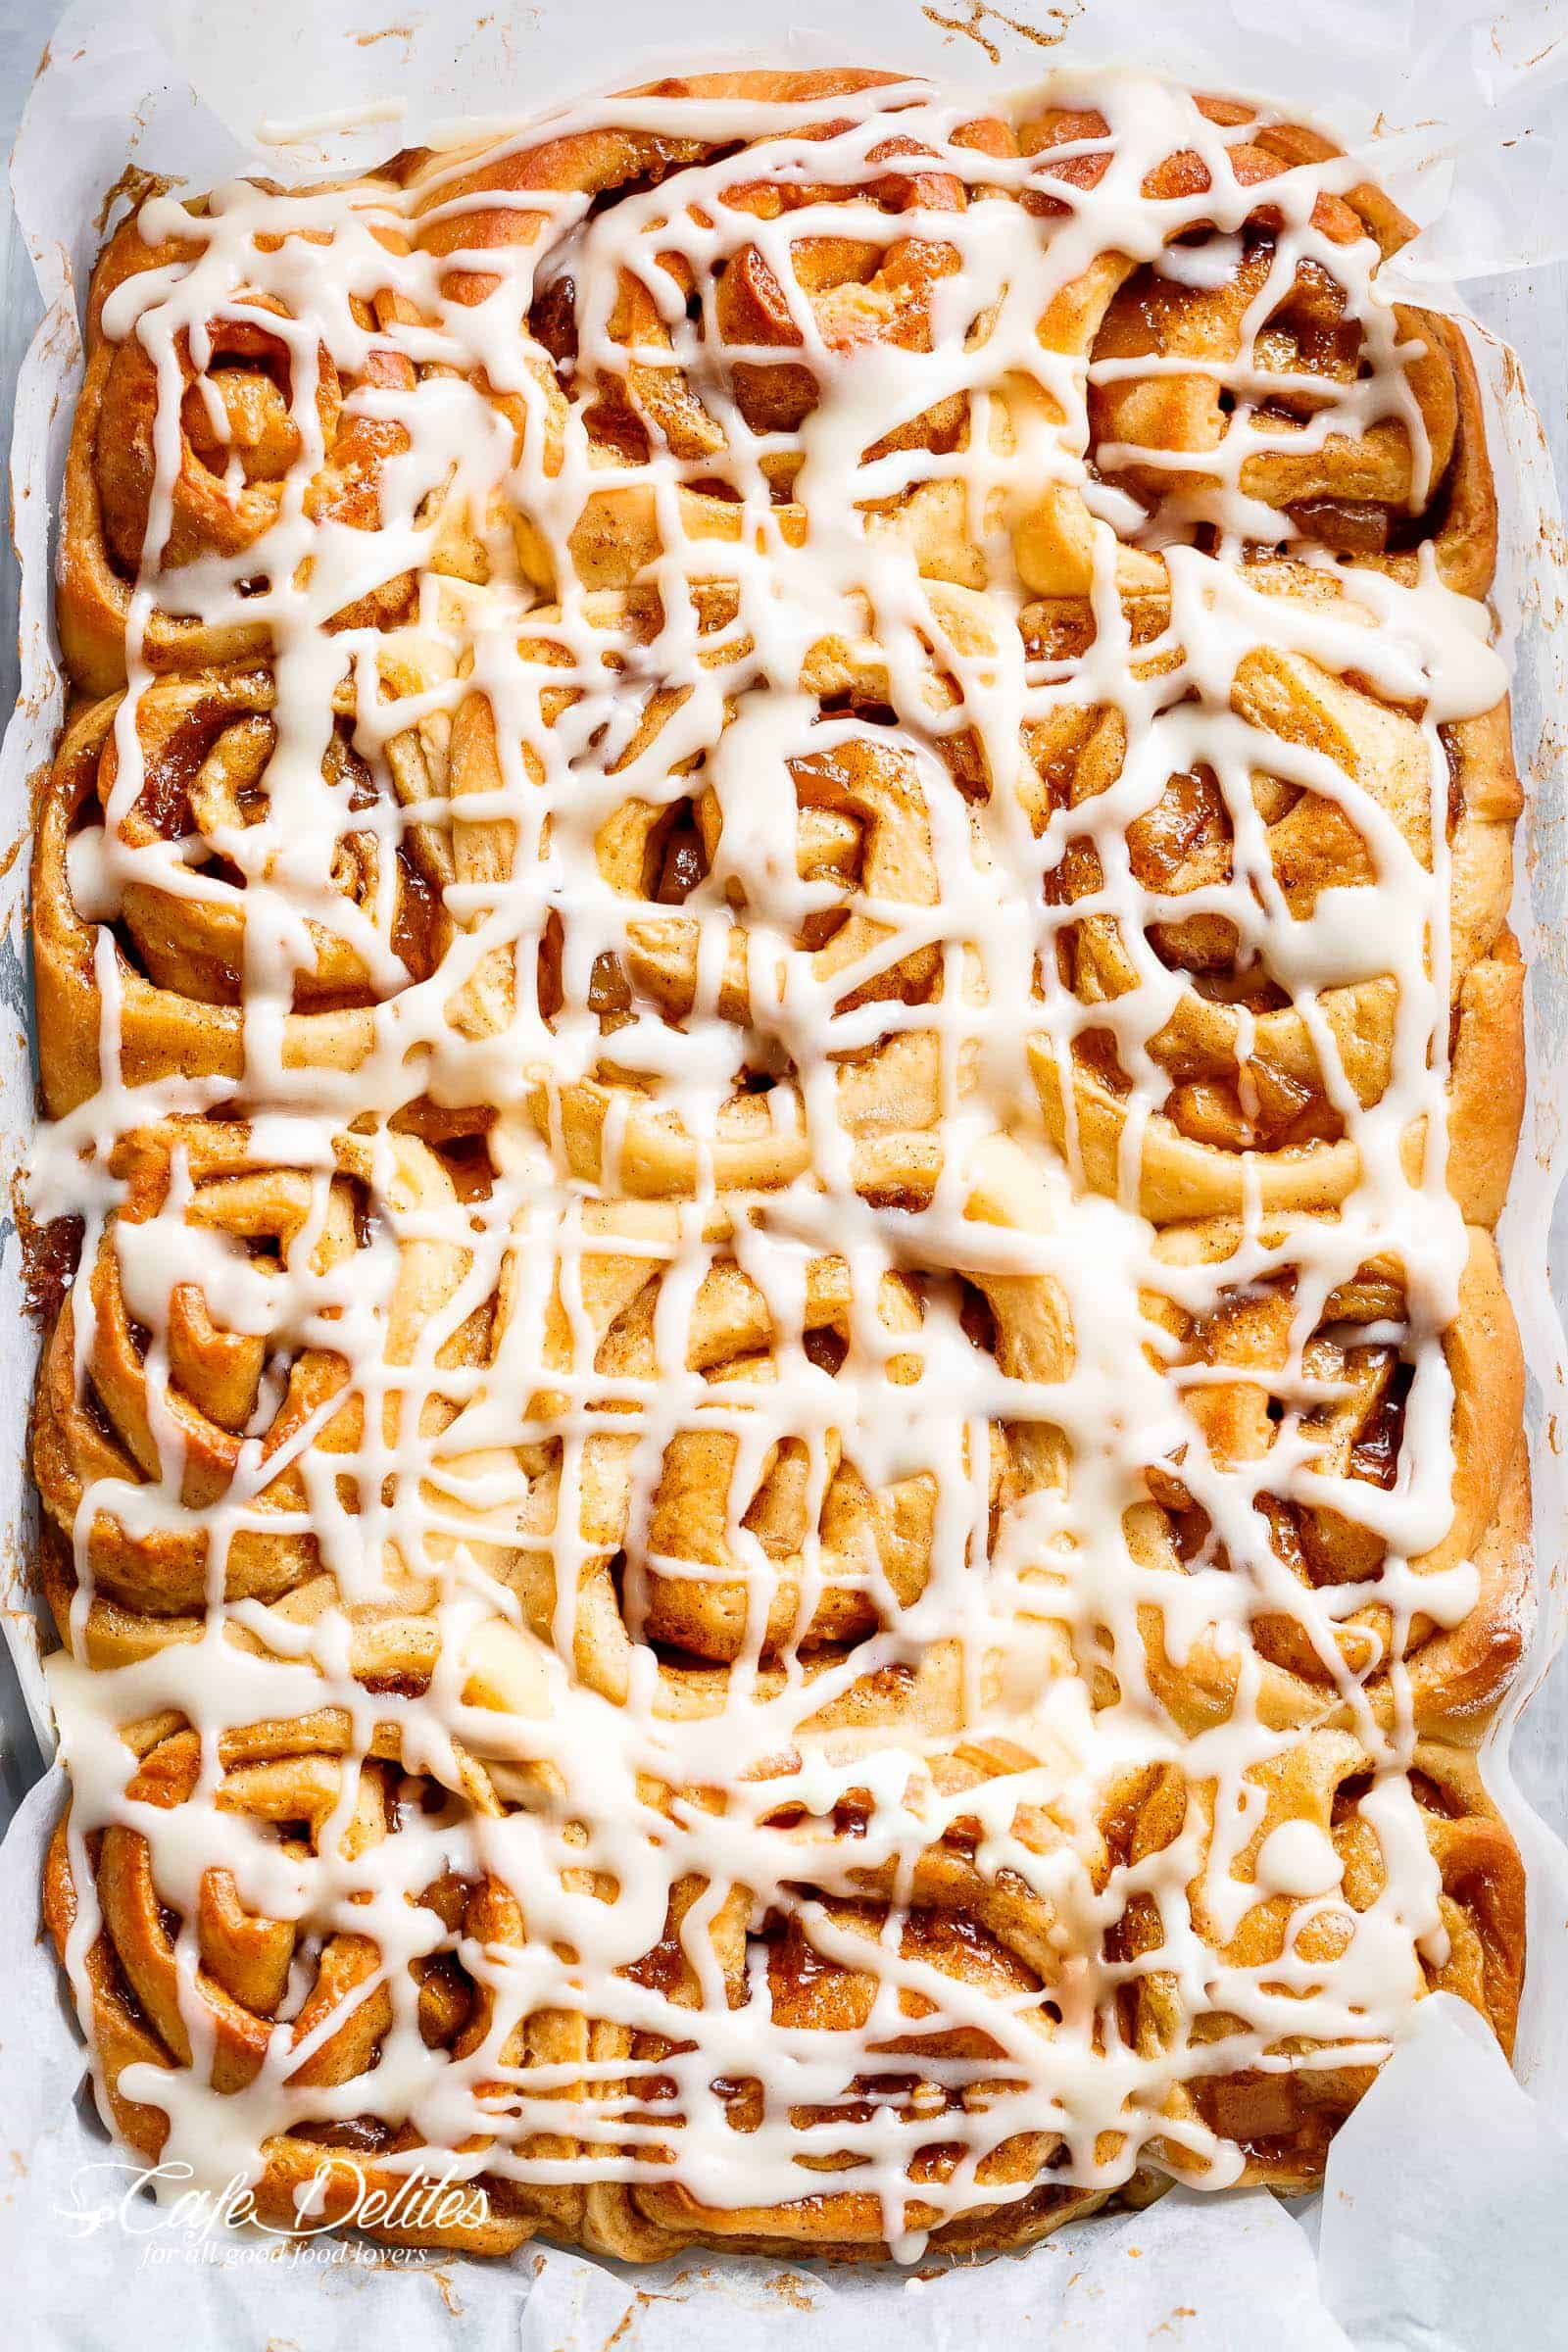 How to make cinnamon rolls icing without cream cheese